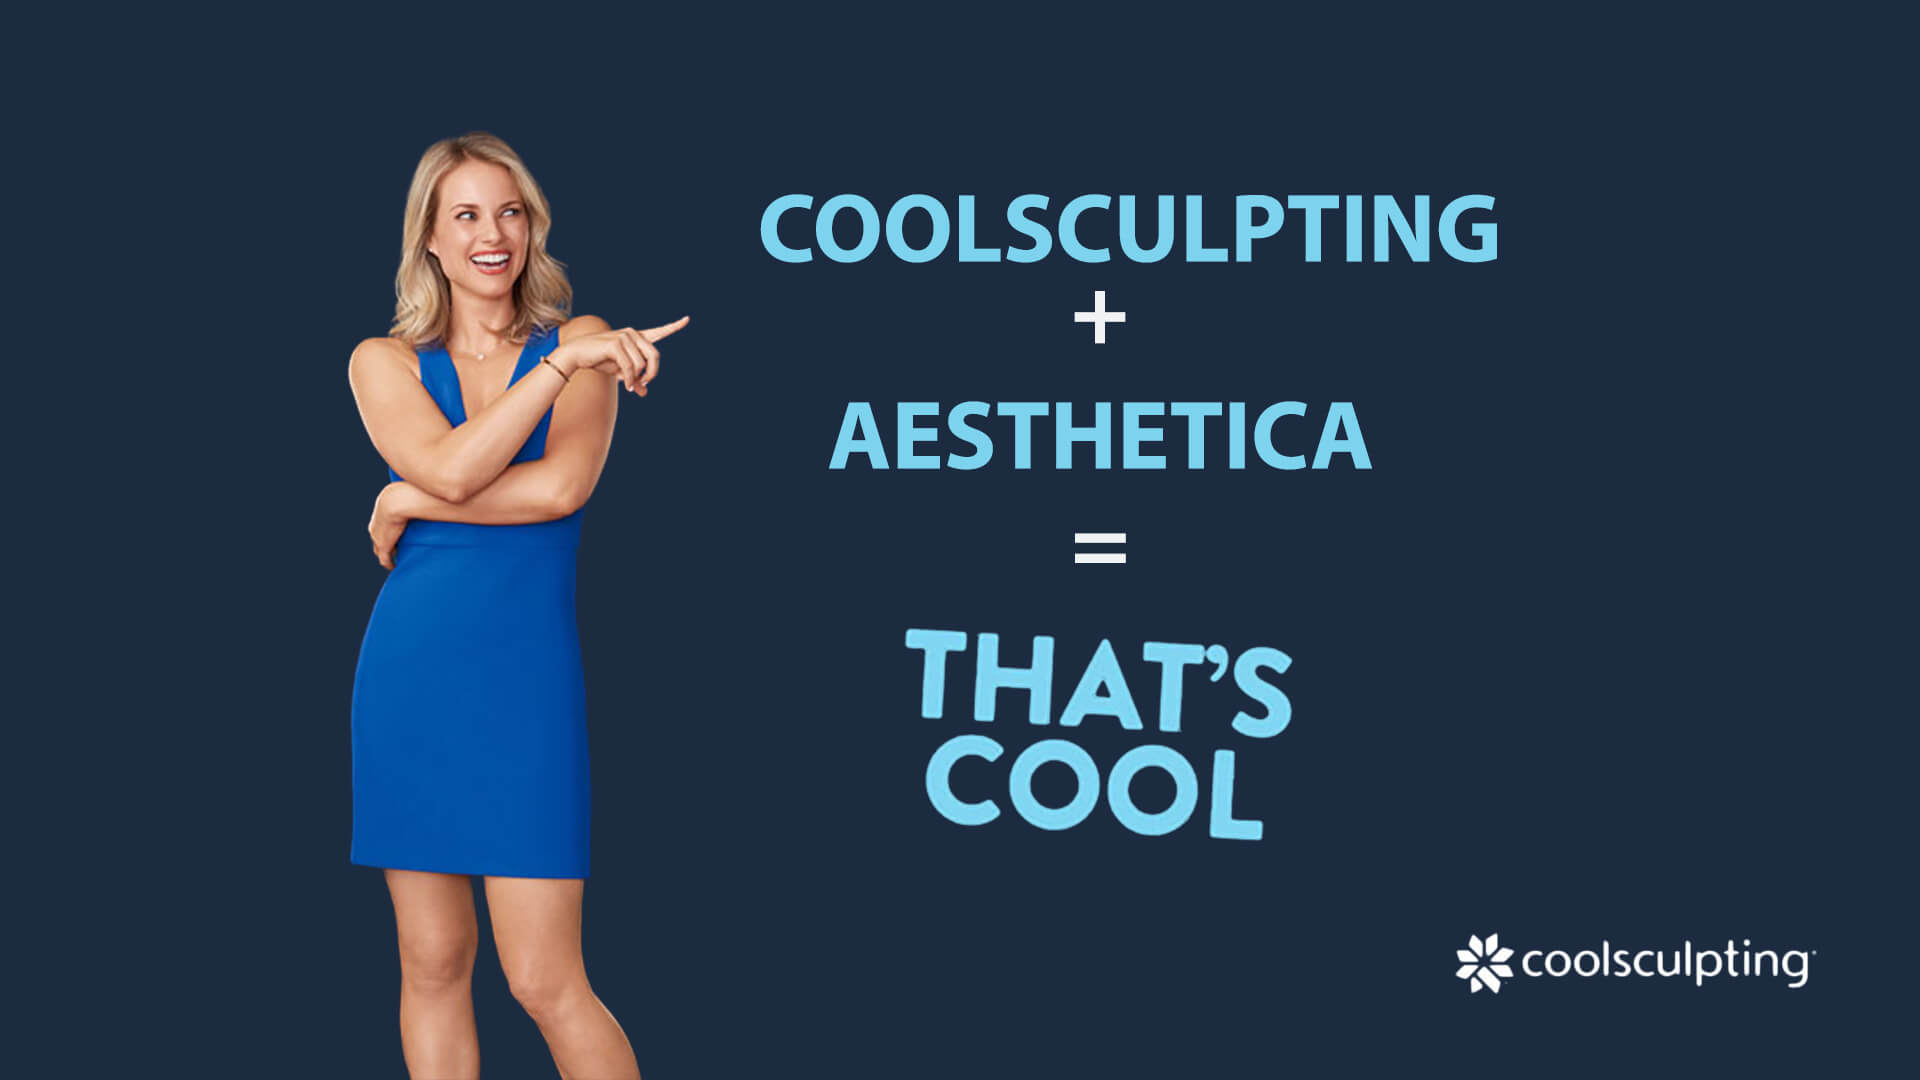 Aesthetica Coolsculpting